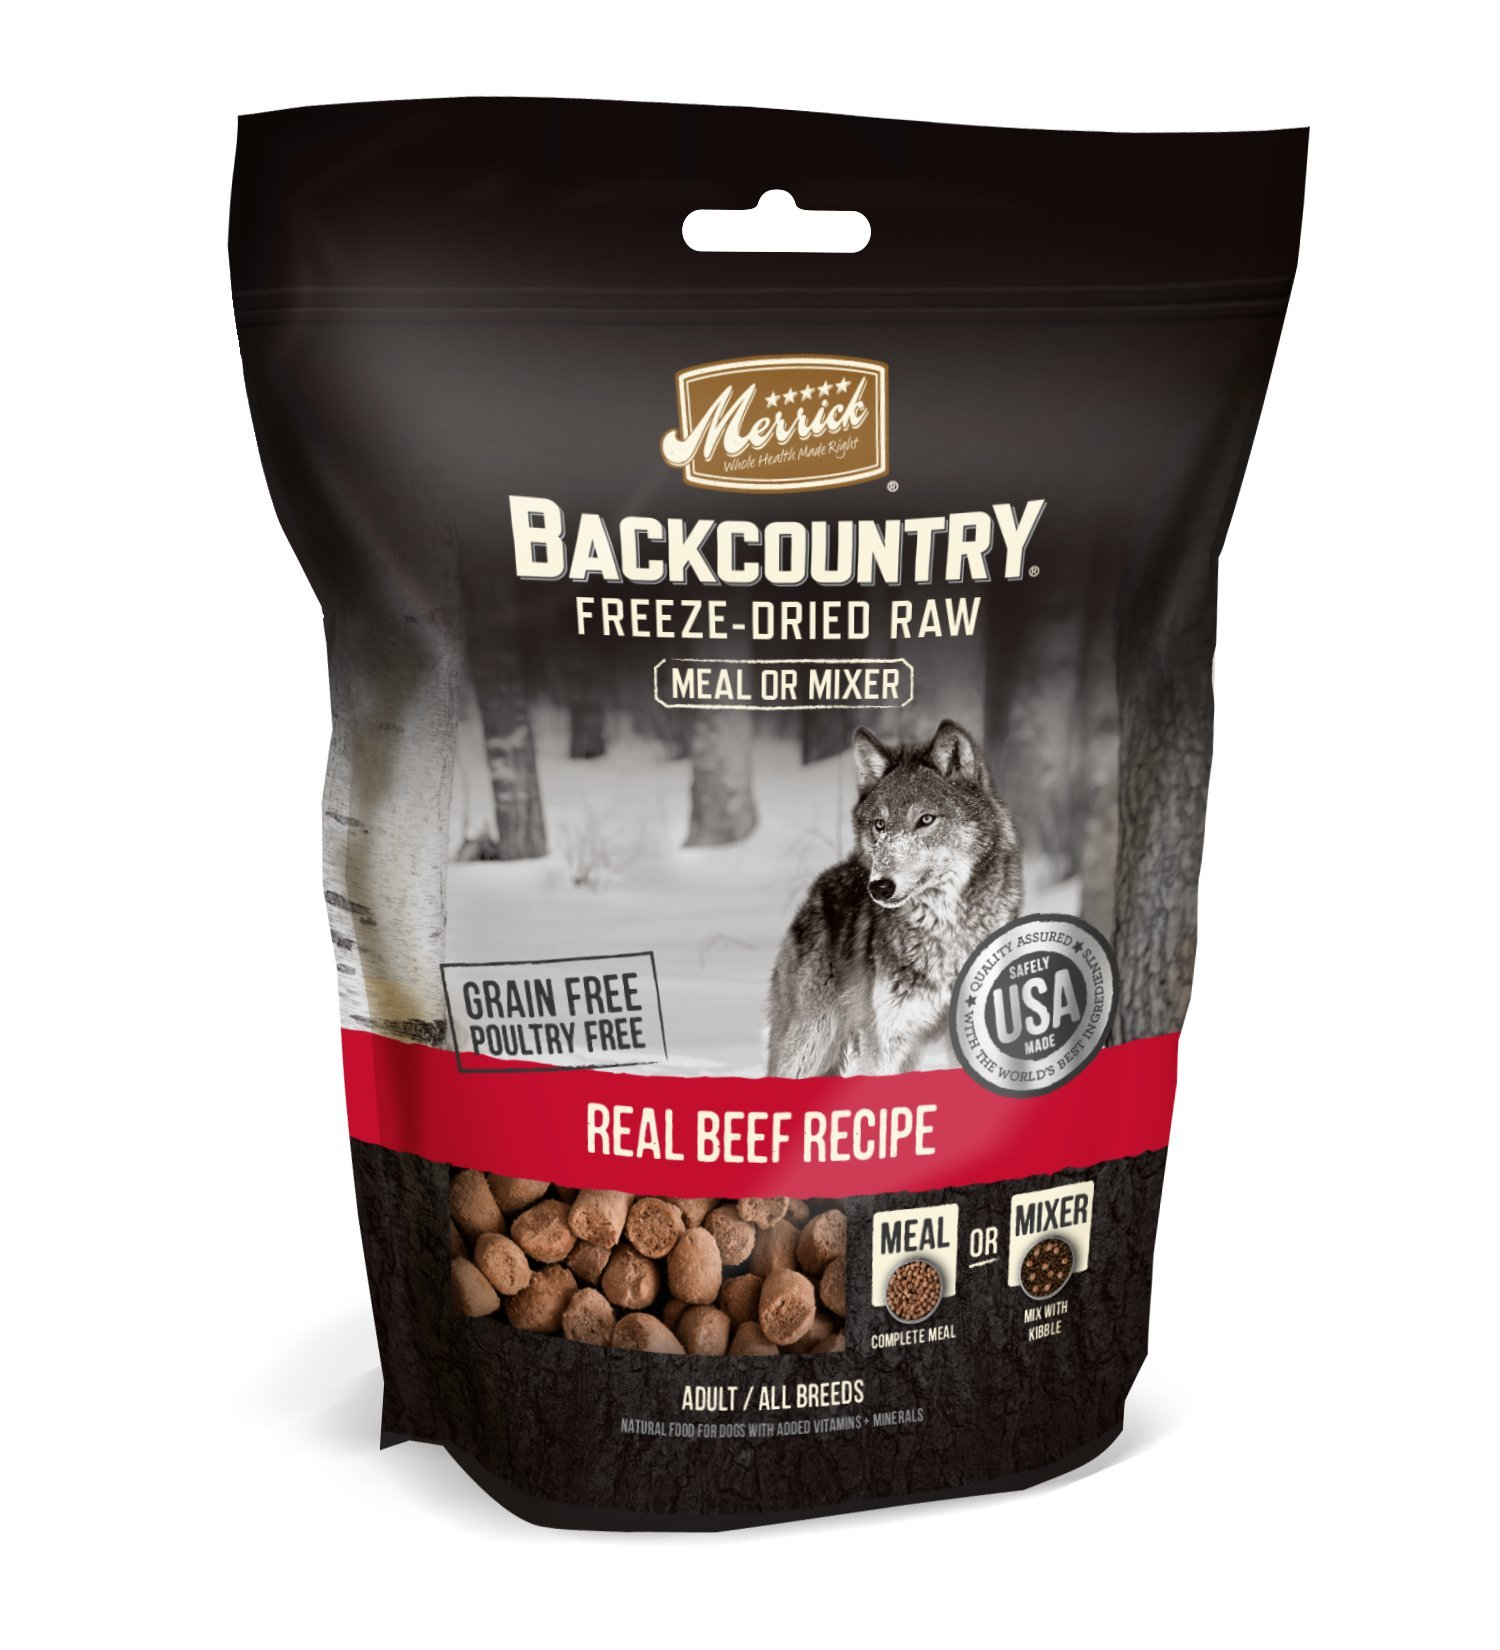 Merrick Backcountry Freeze-Dried Raw Real Beef Recipe Meal Or Mixer Grain Free Adult Dog Food, 12.5 Oz. by Merrick